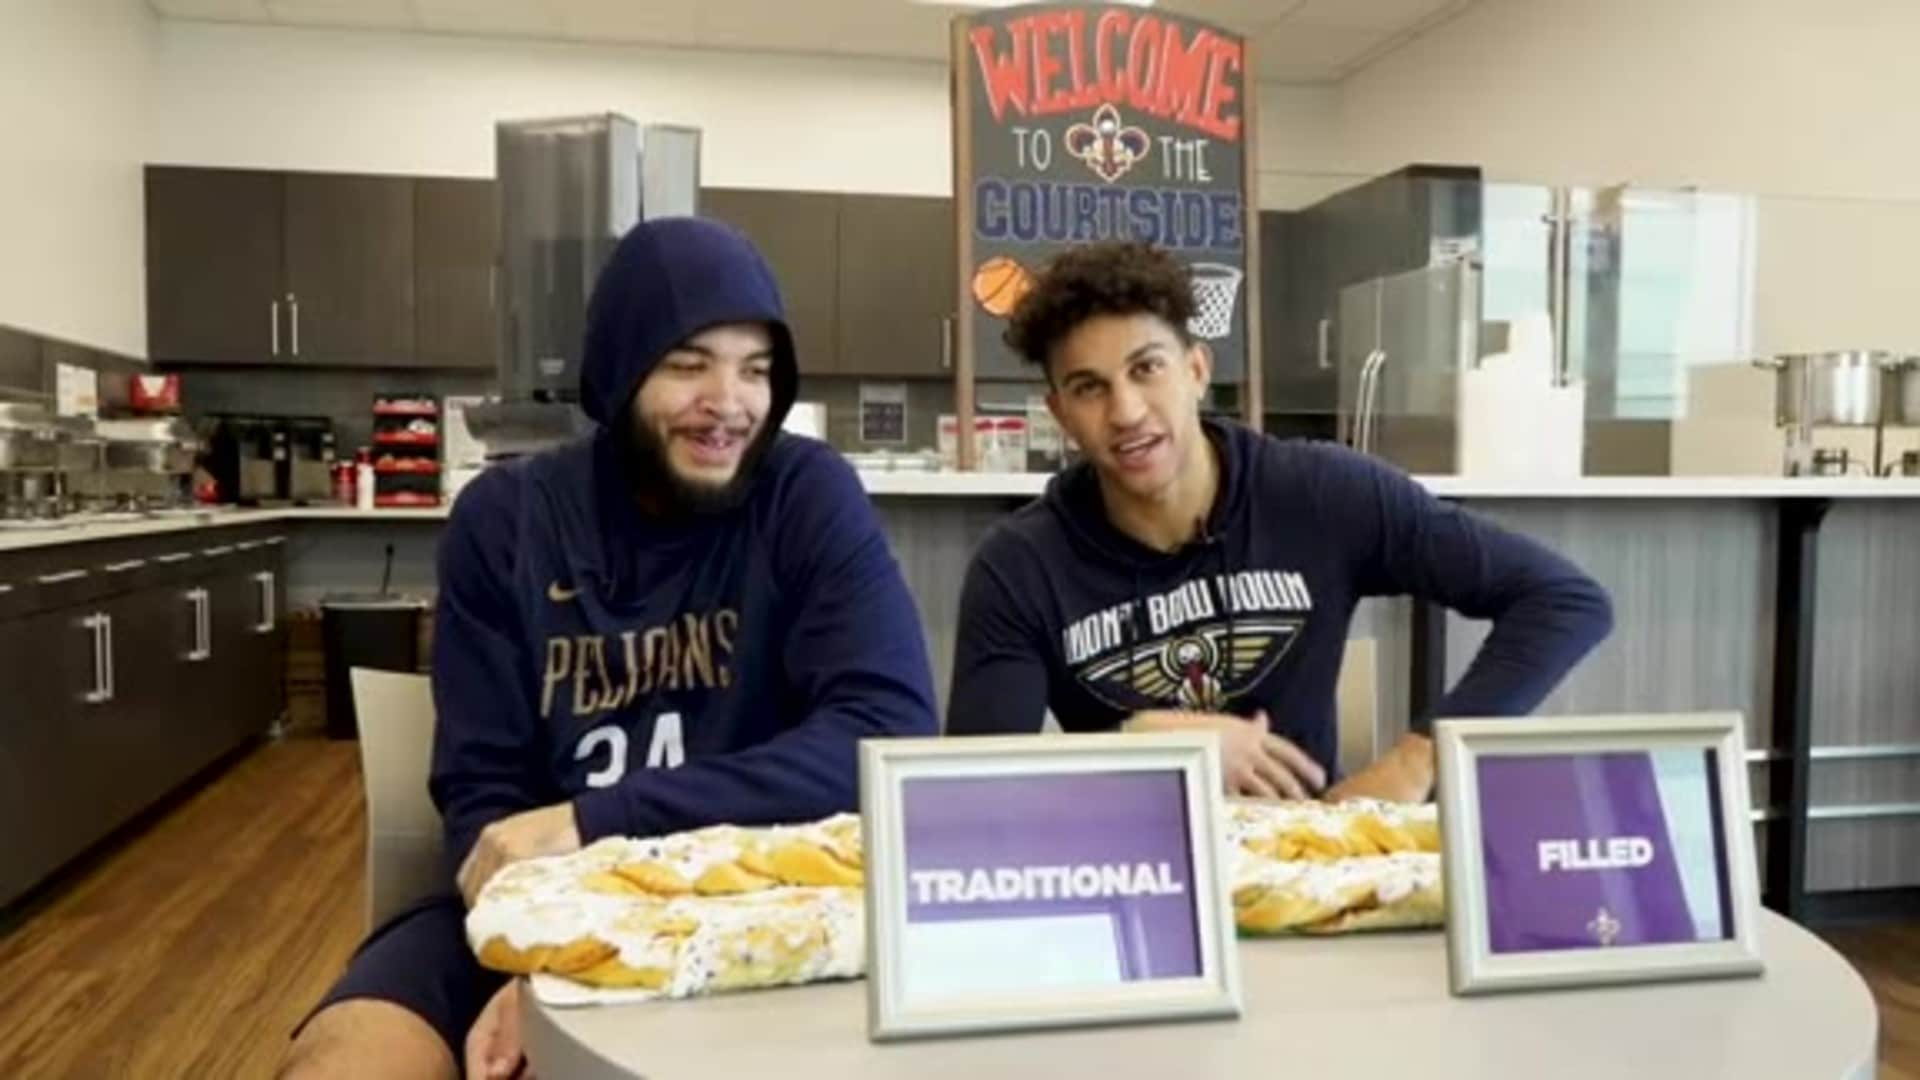 Pelicans players answer the age old king cake question - Traditional or Filled?